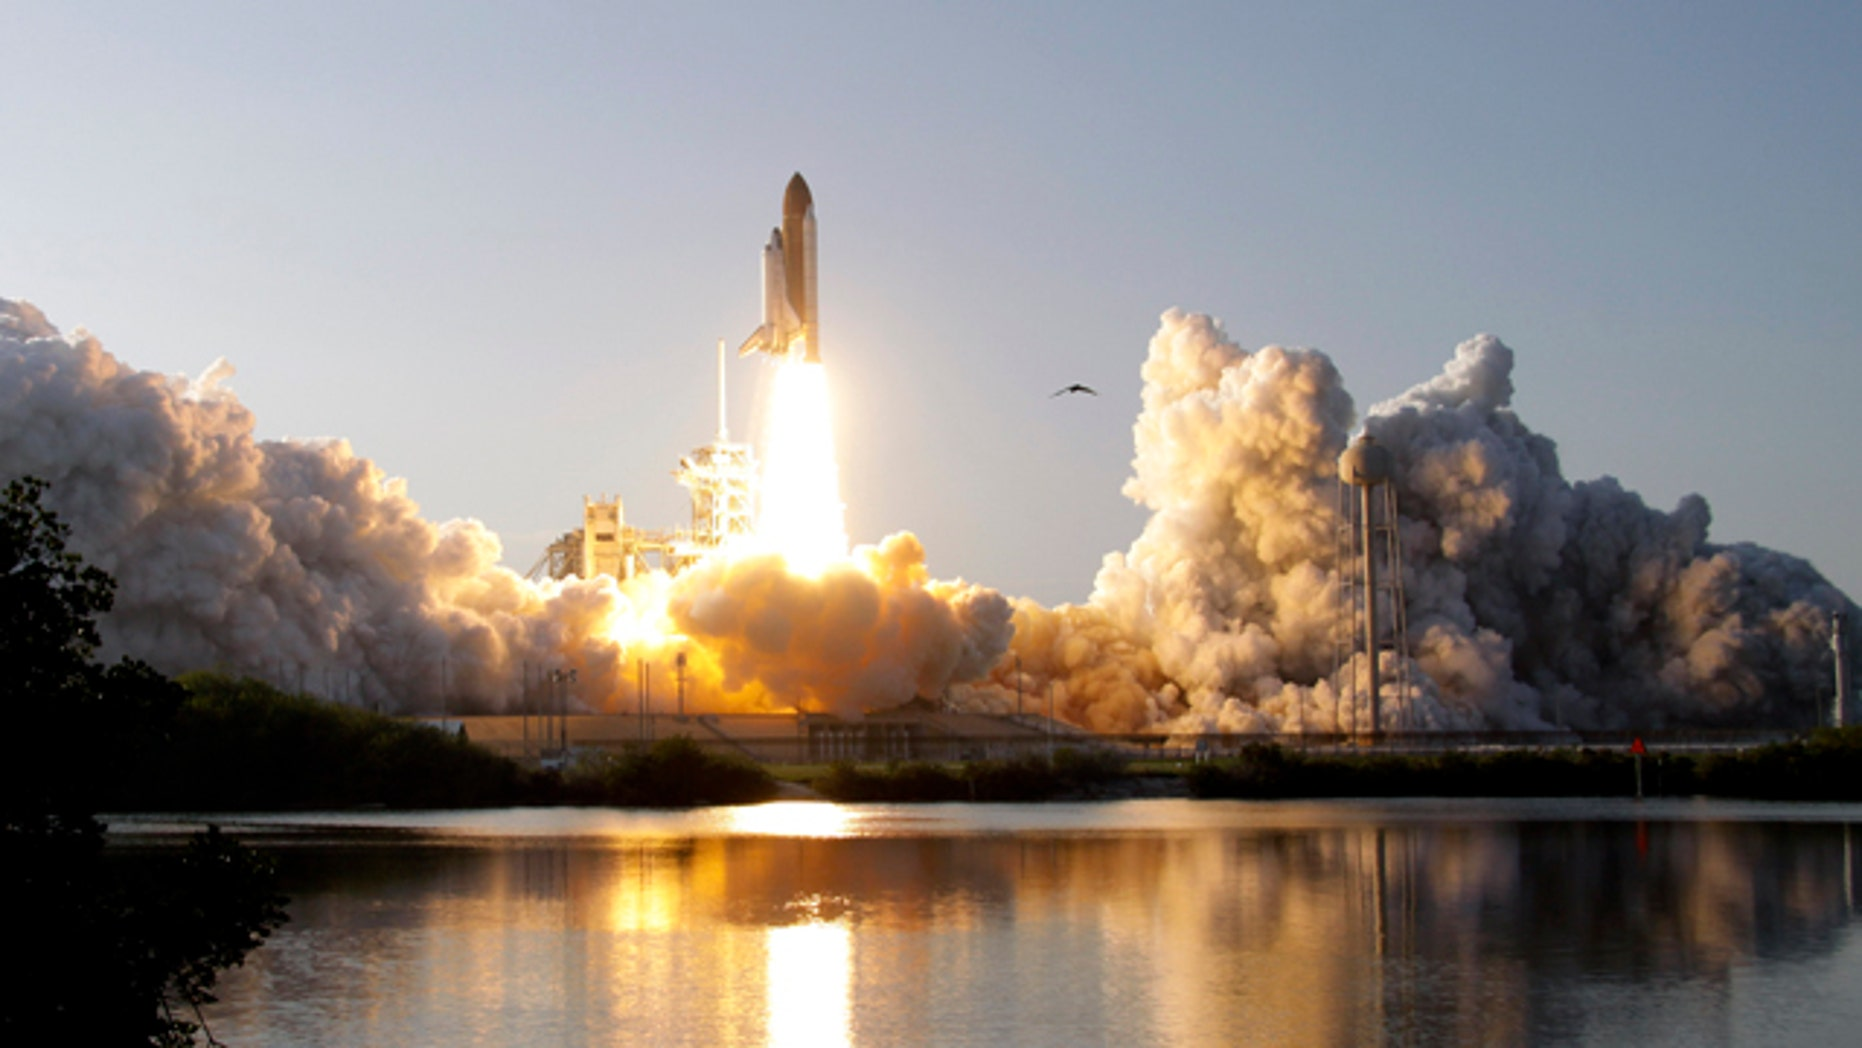 Space shuttle Discovery lifts off from Pad 39A at the Kennedy Space Center in Cape Canaveral, Fla., Thursday, Feb. 24, 2011.